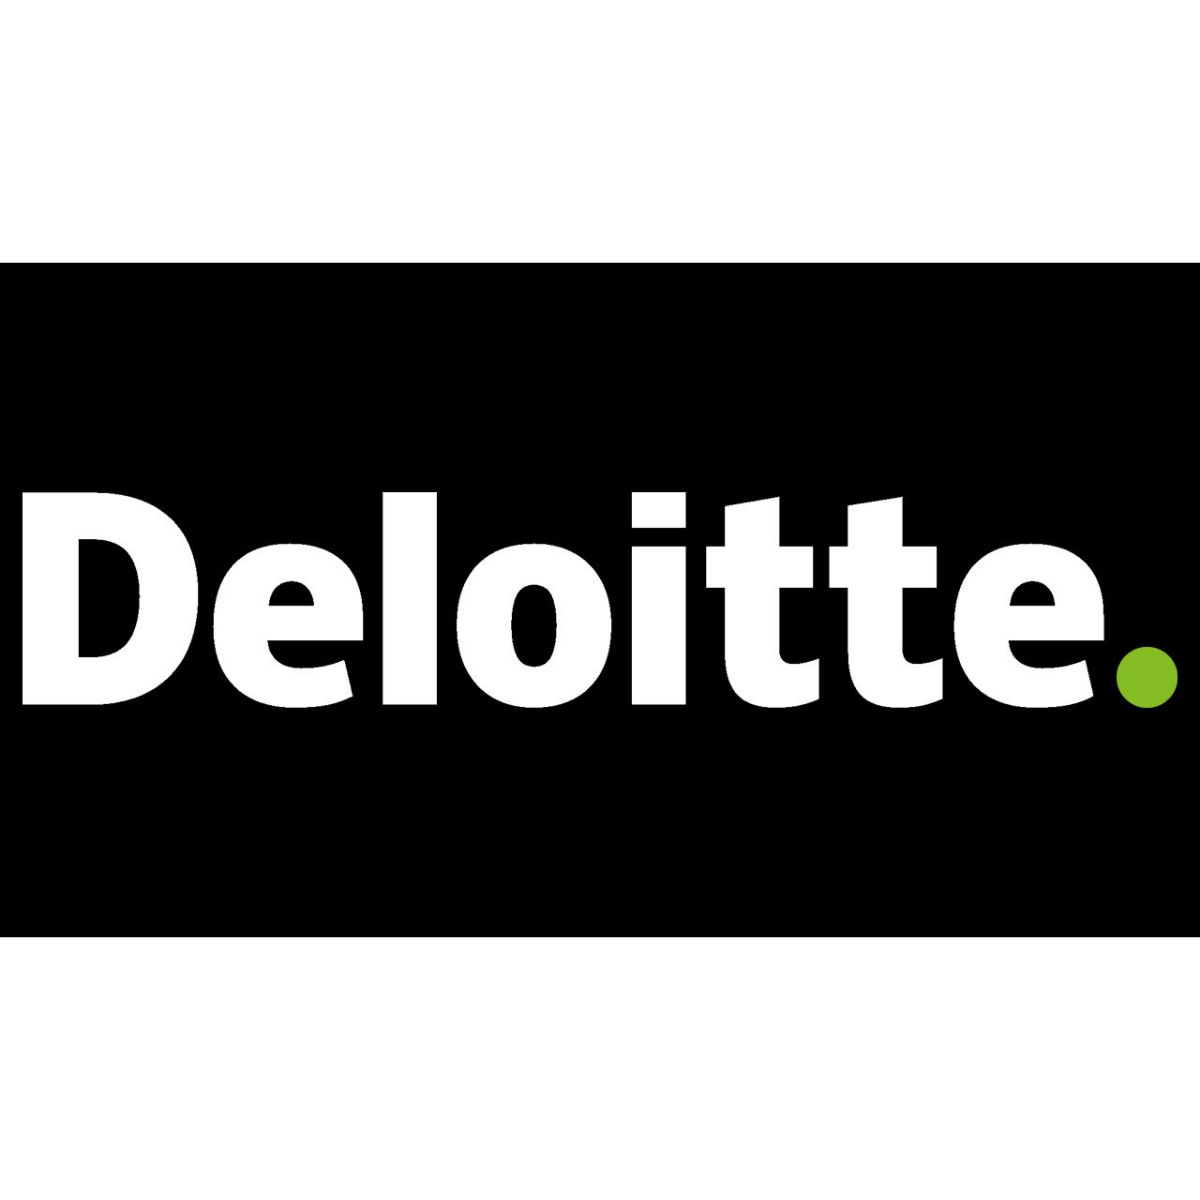 https://www.pro-manchester.co.uk/wp-content/uploads/2021/02/deloitte-square.png